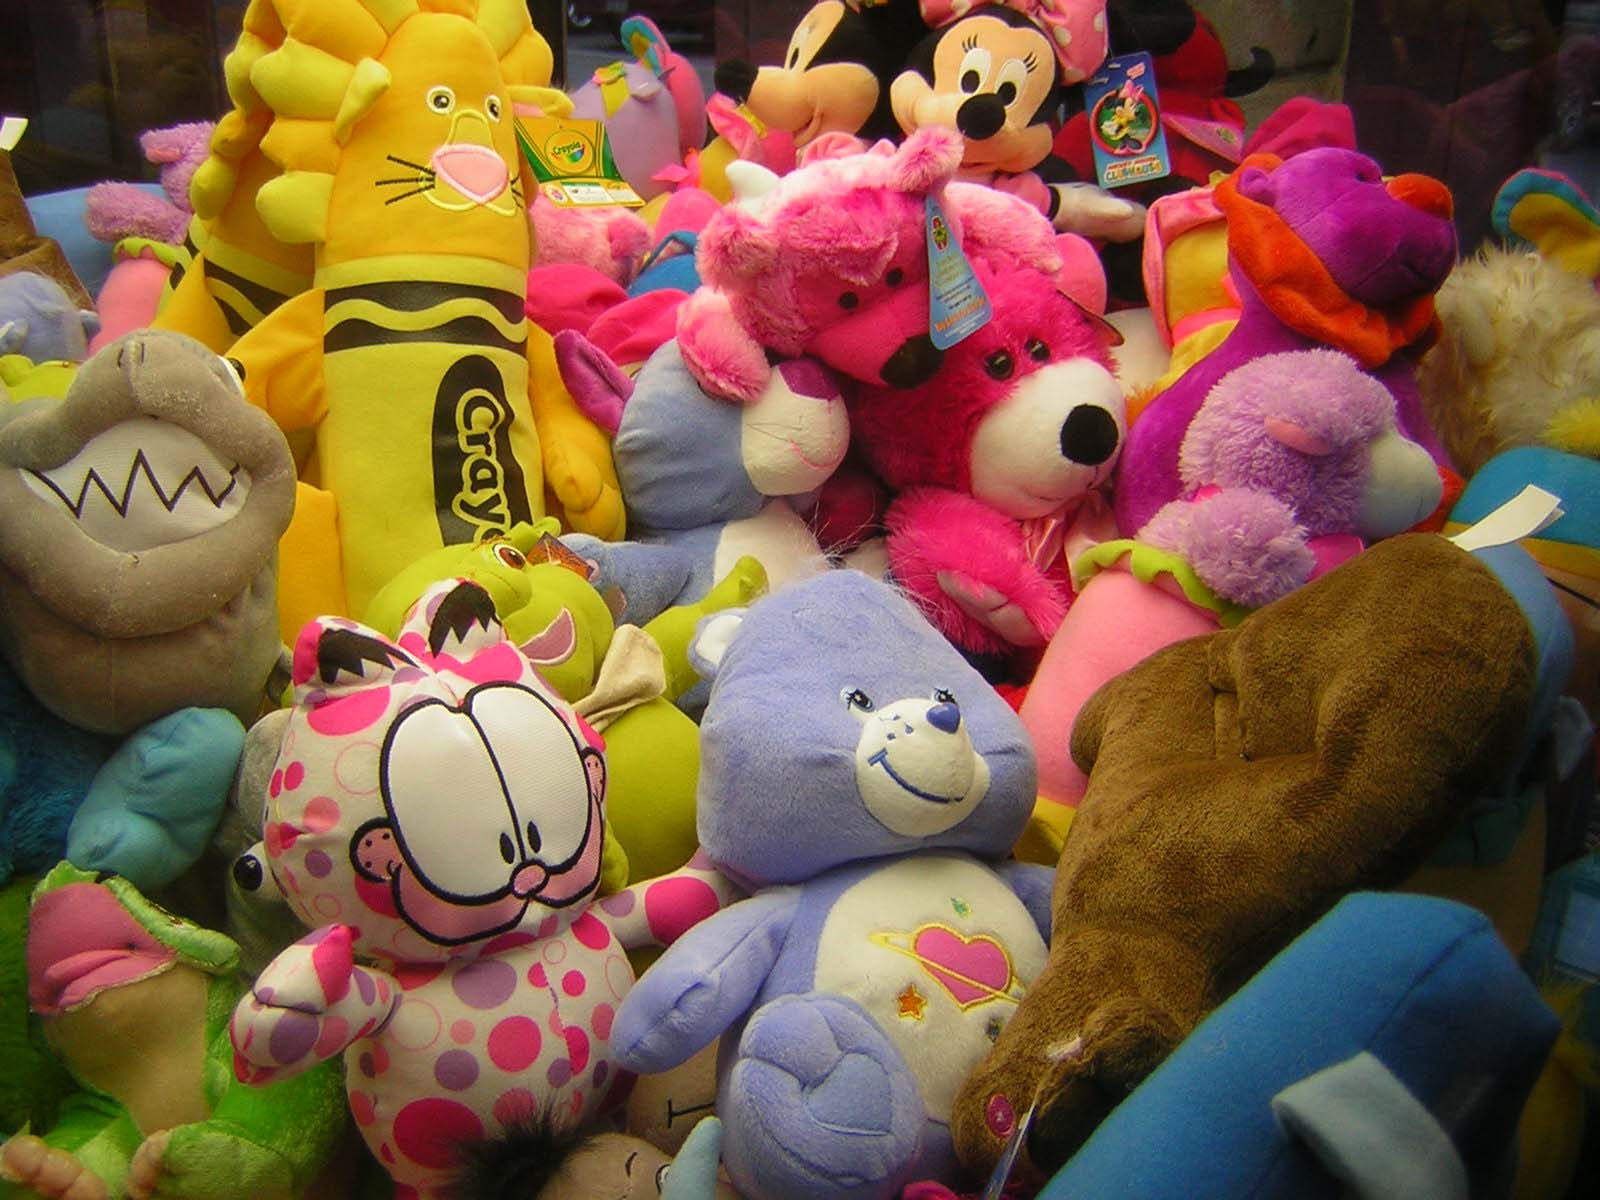 Claw Machine Plush Toys : Claw machine places and things to look at